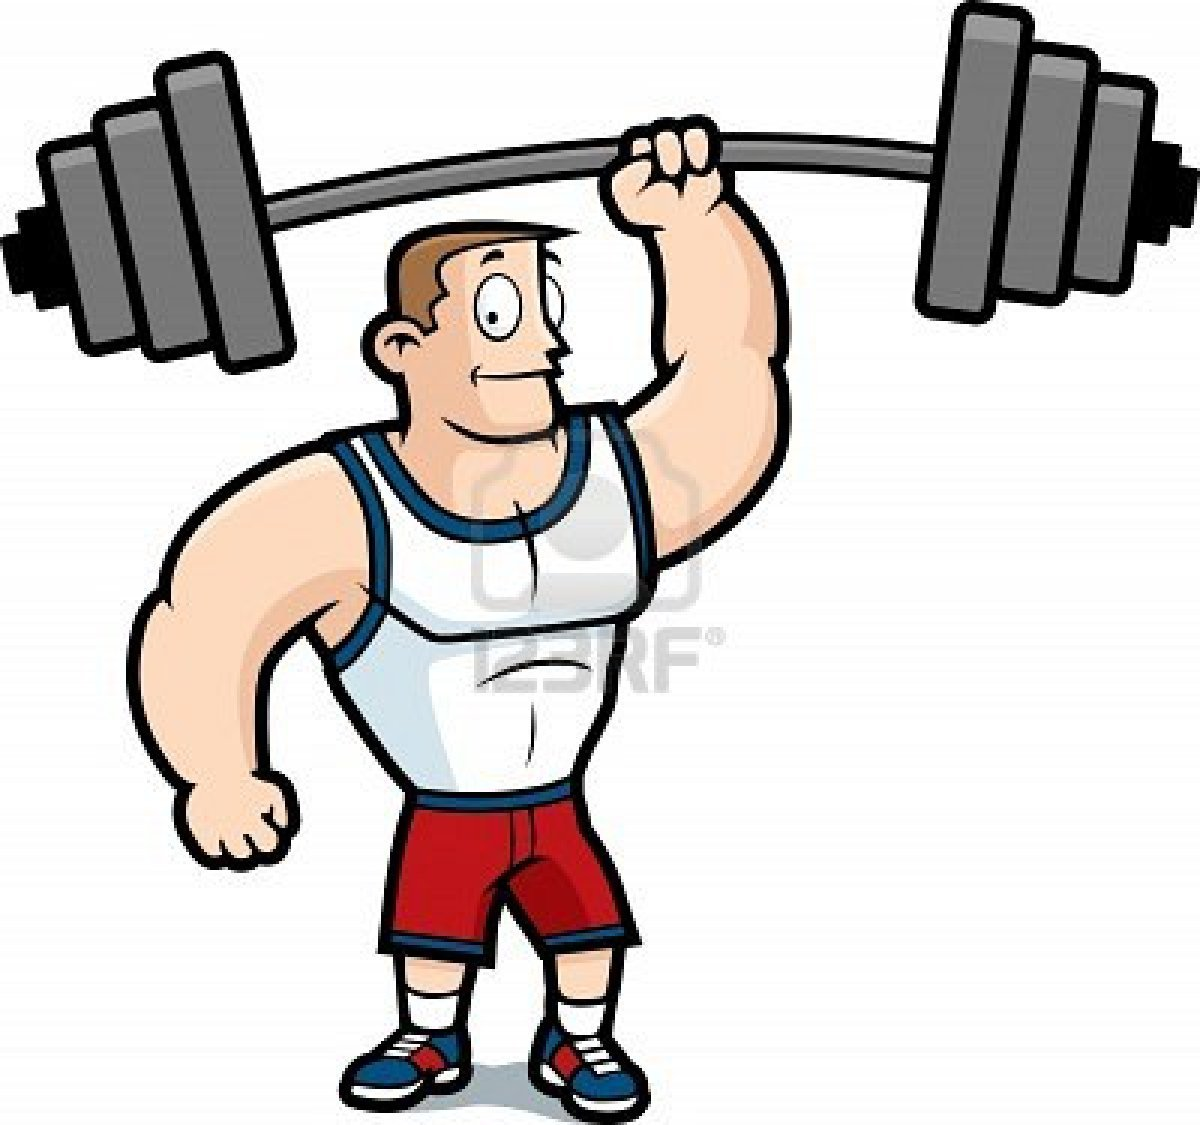 Weightlifting with one arm clipart jpg transparent library Strong Clipart - Free Clipart jpg transparent library